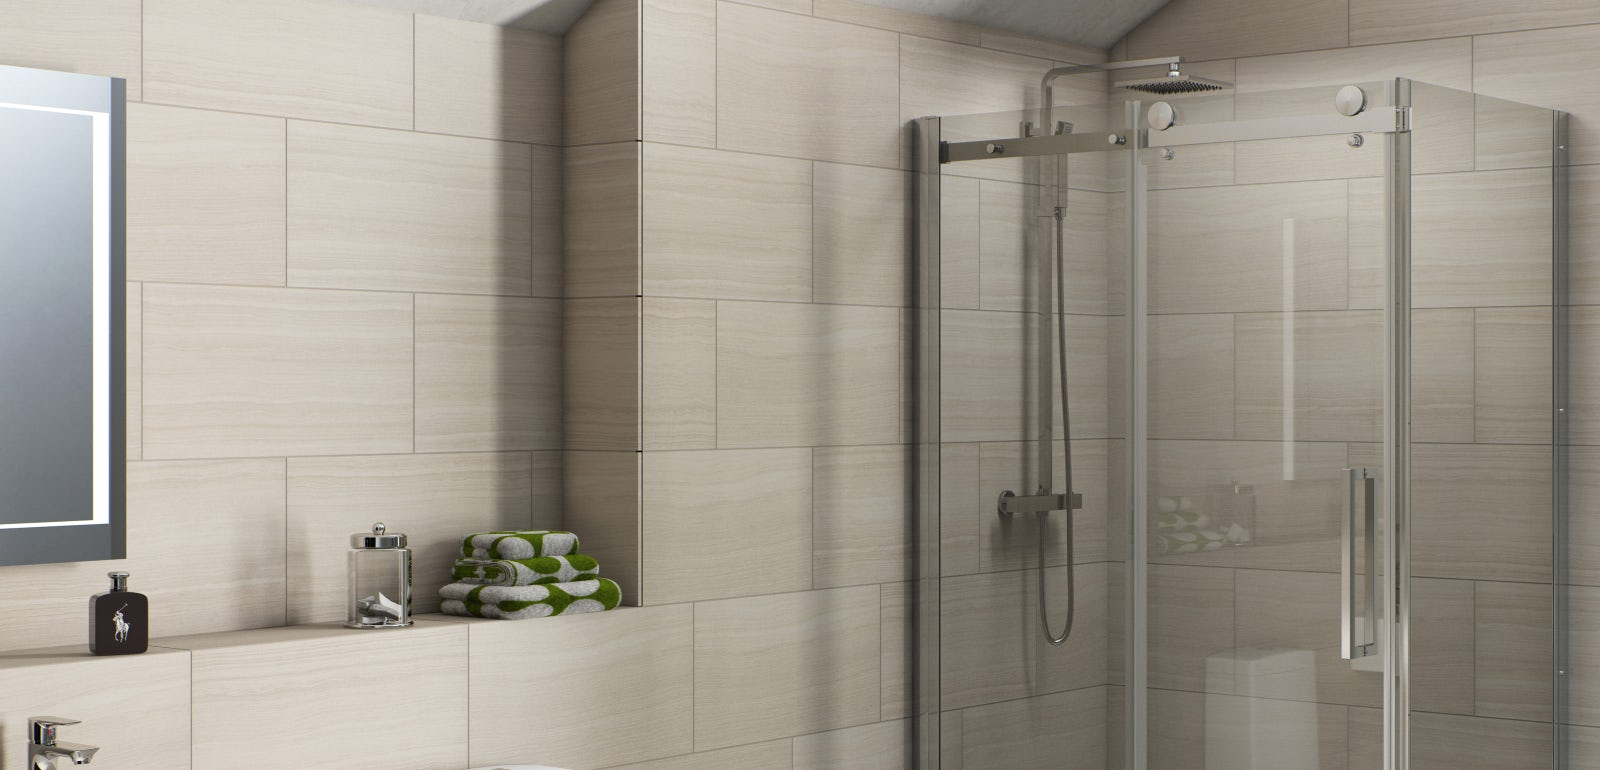 How to assemble a shower cabin 72